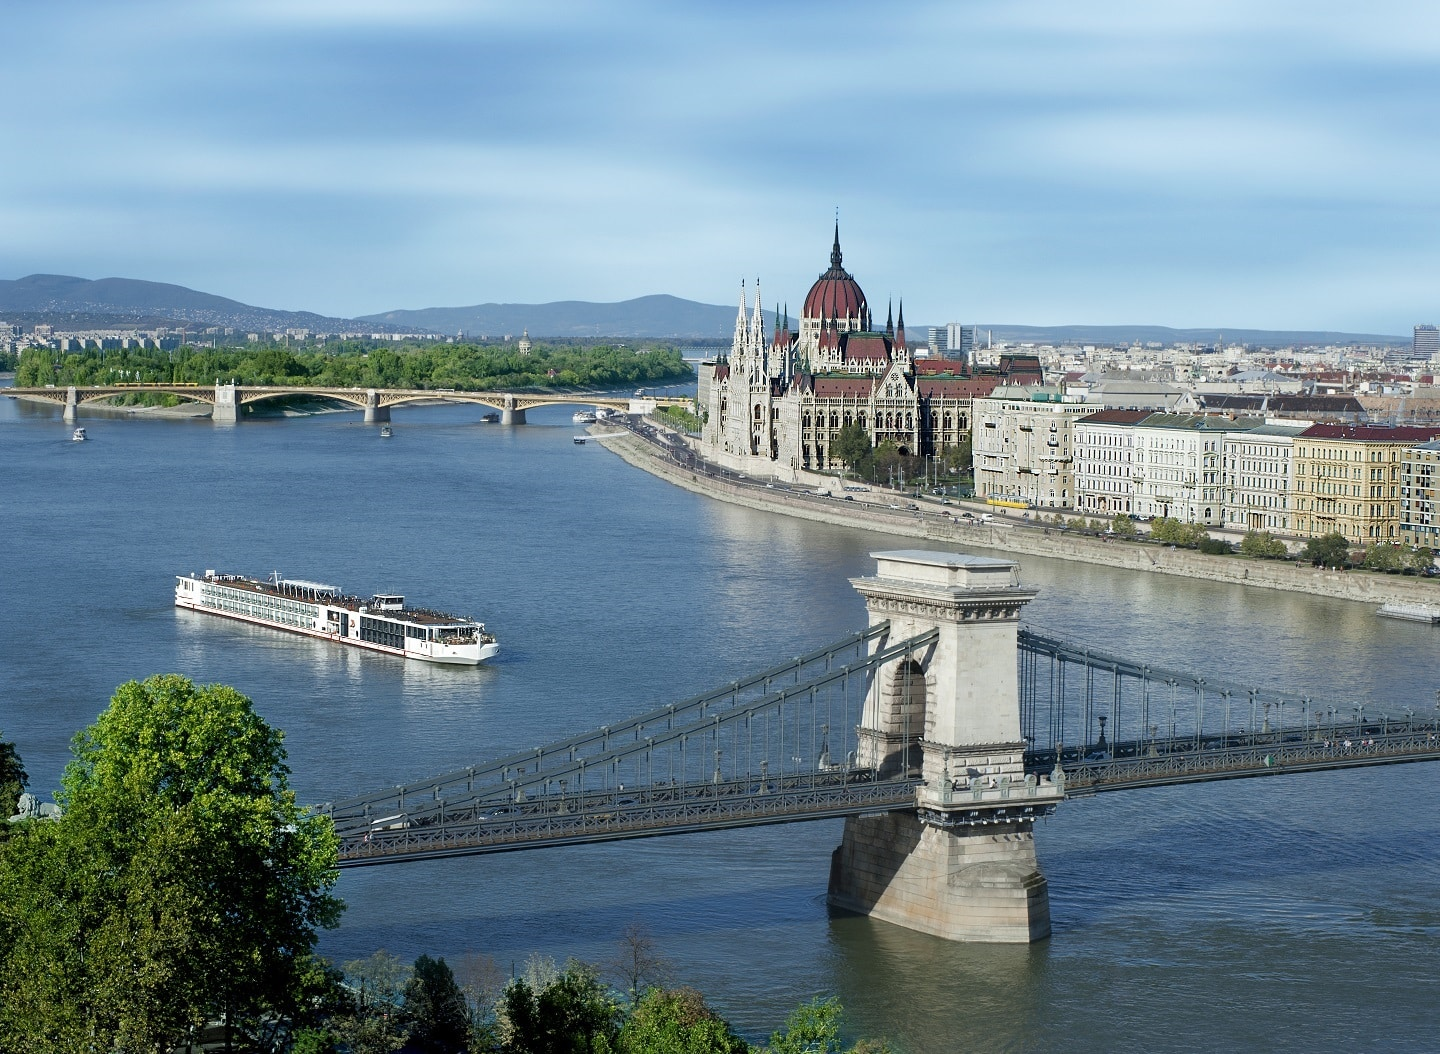 Viking river cruise longship in Budapest